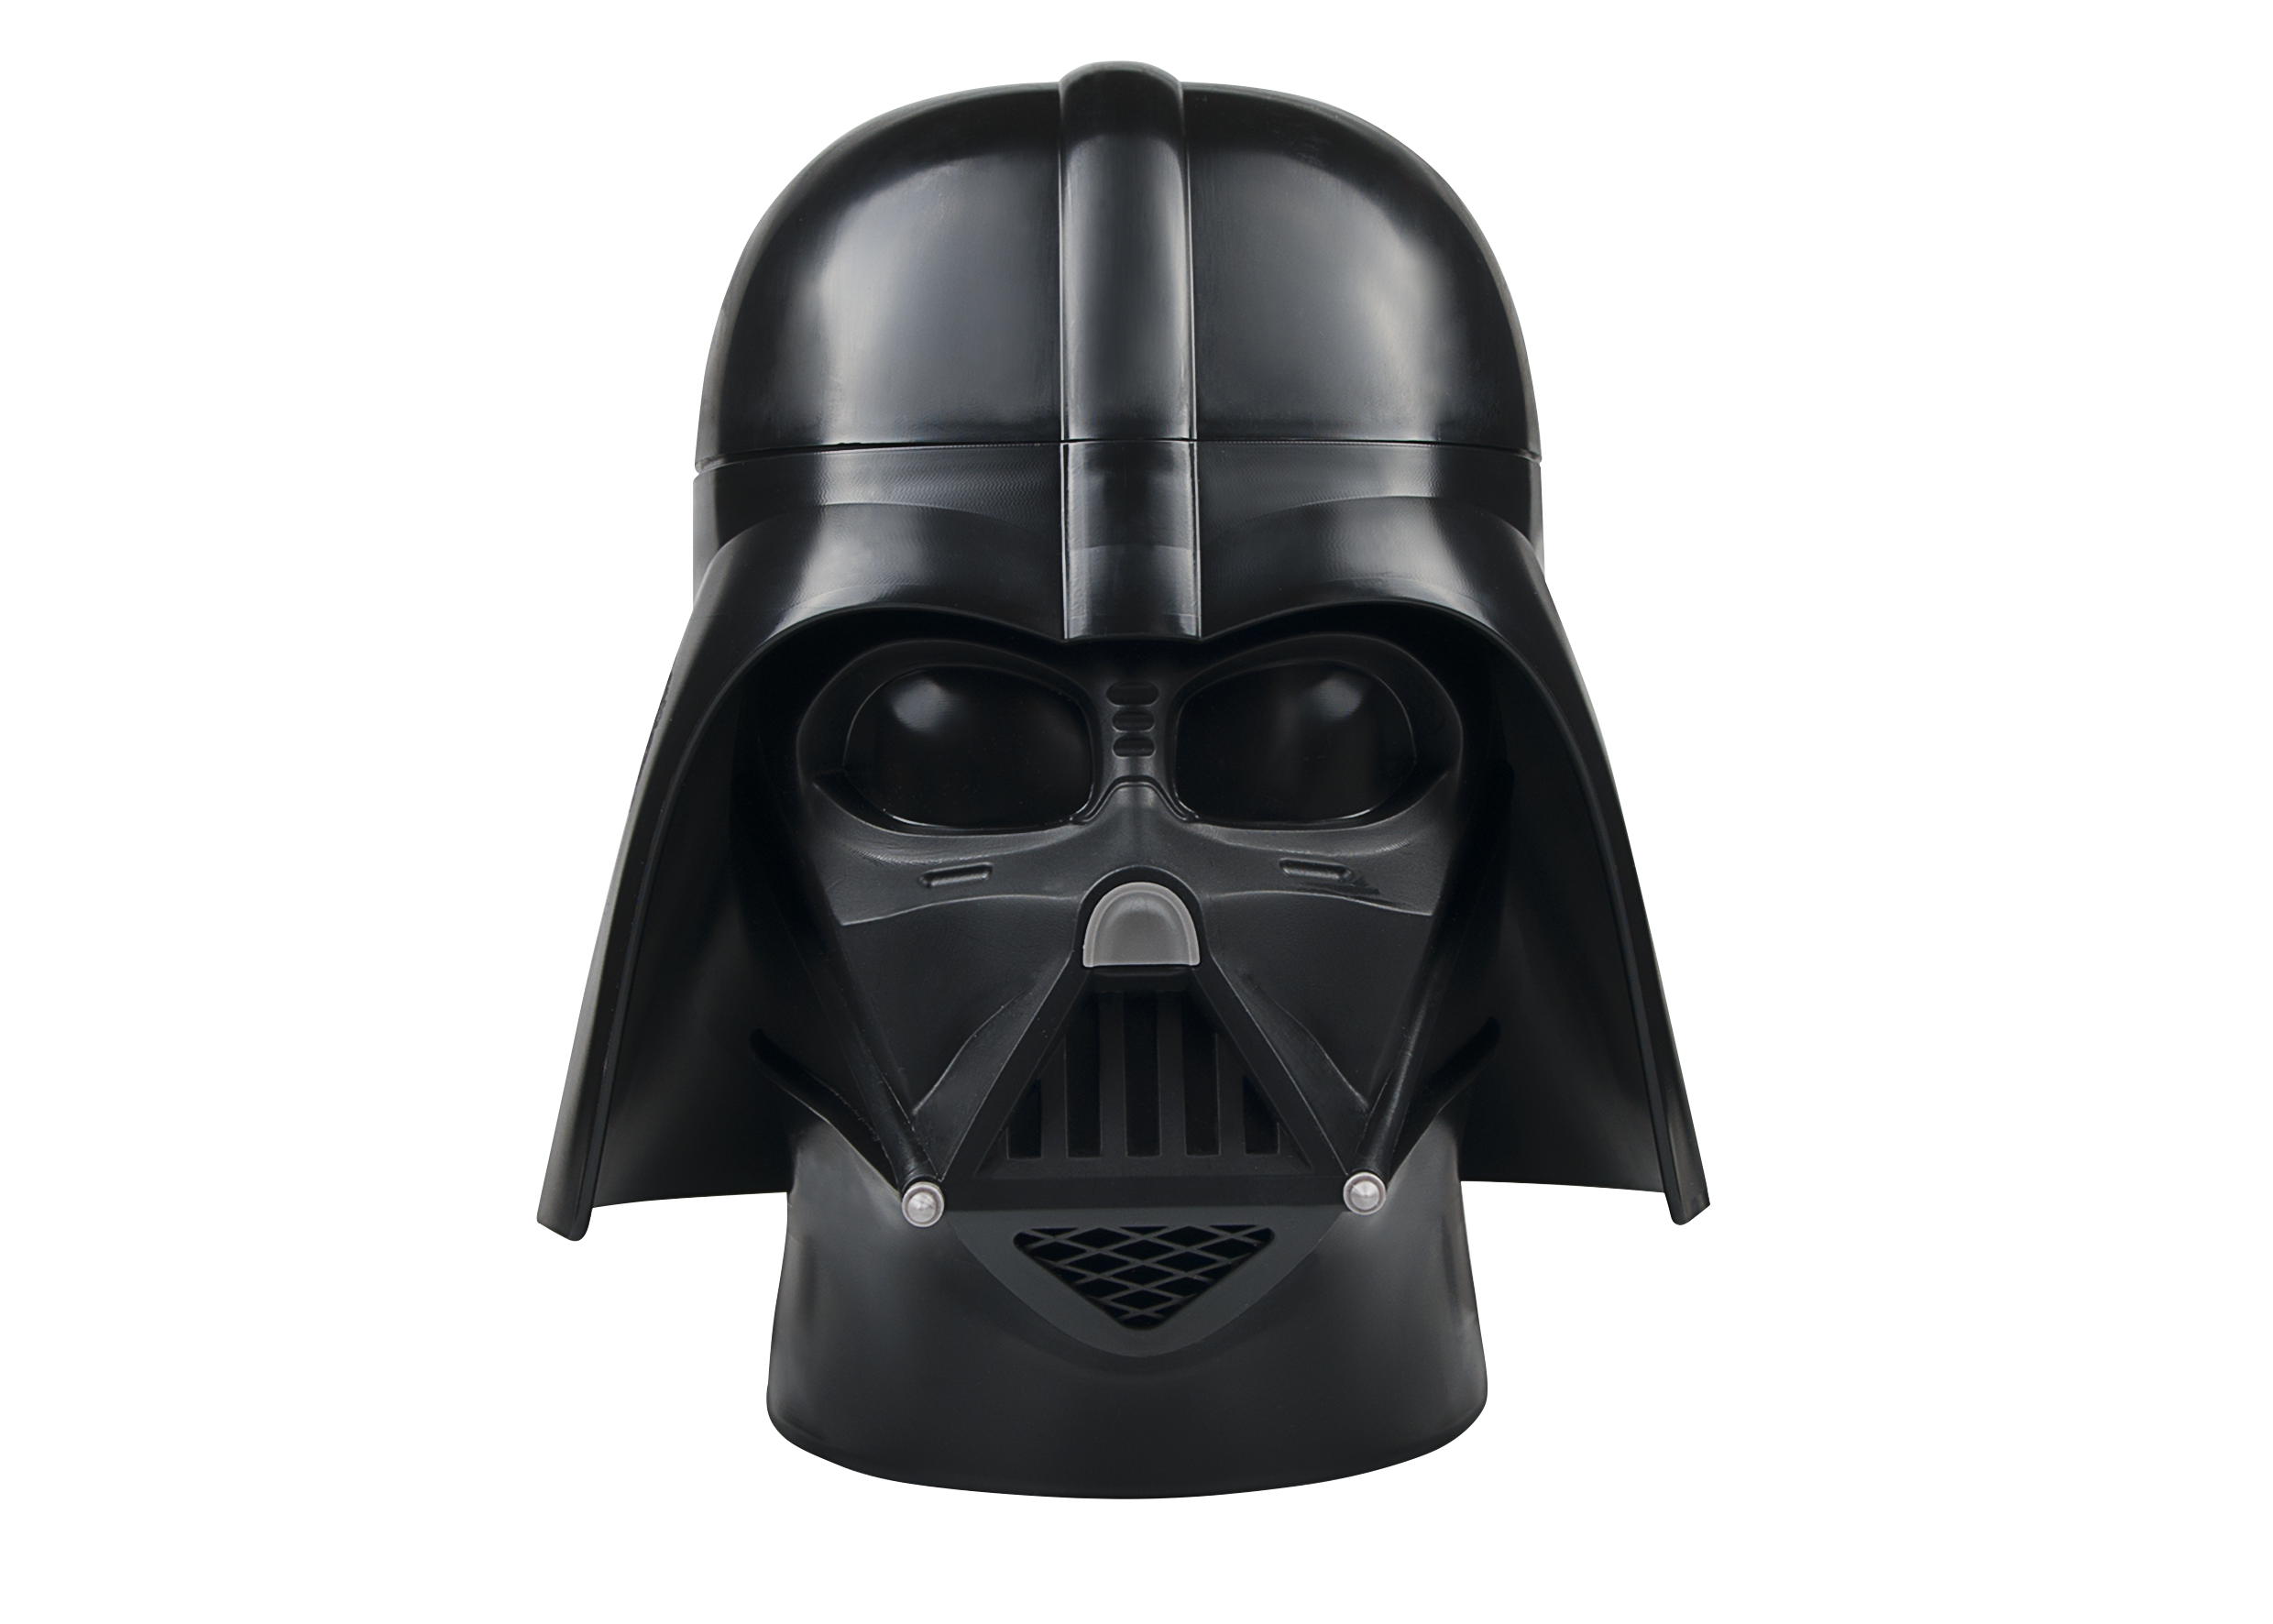 Png images free download. Starwars clipart head darth vader